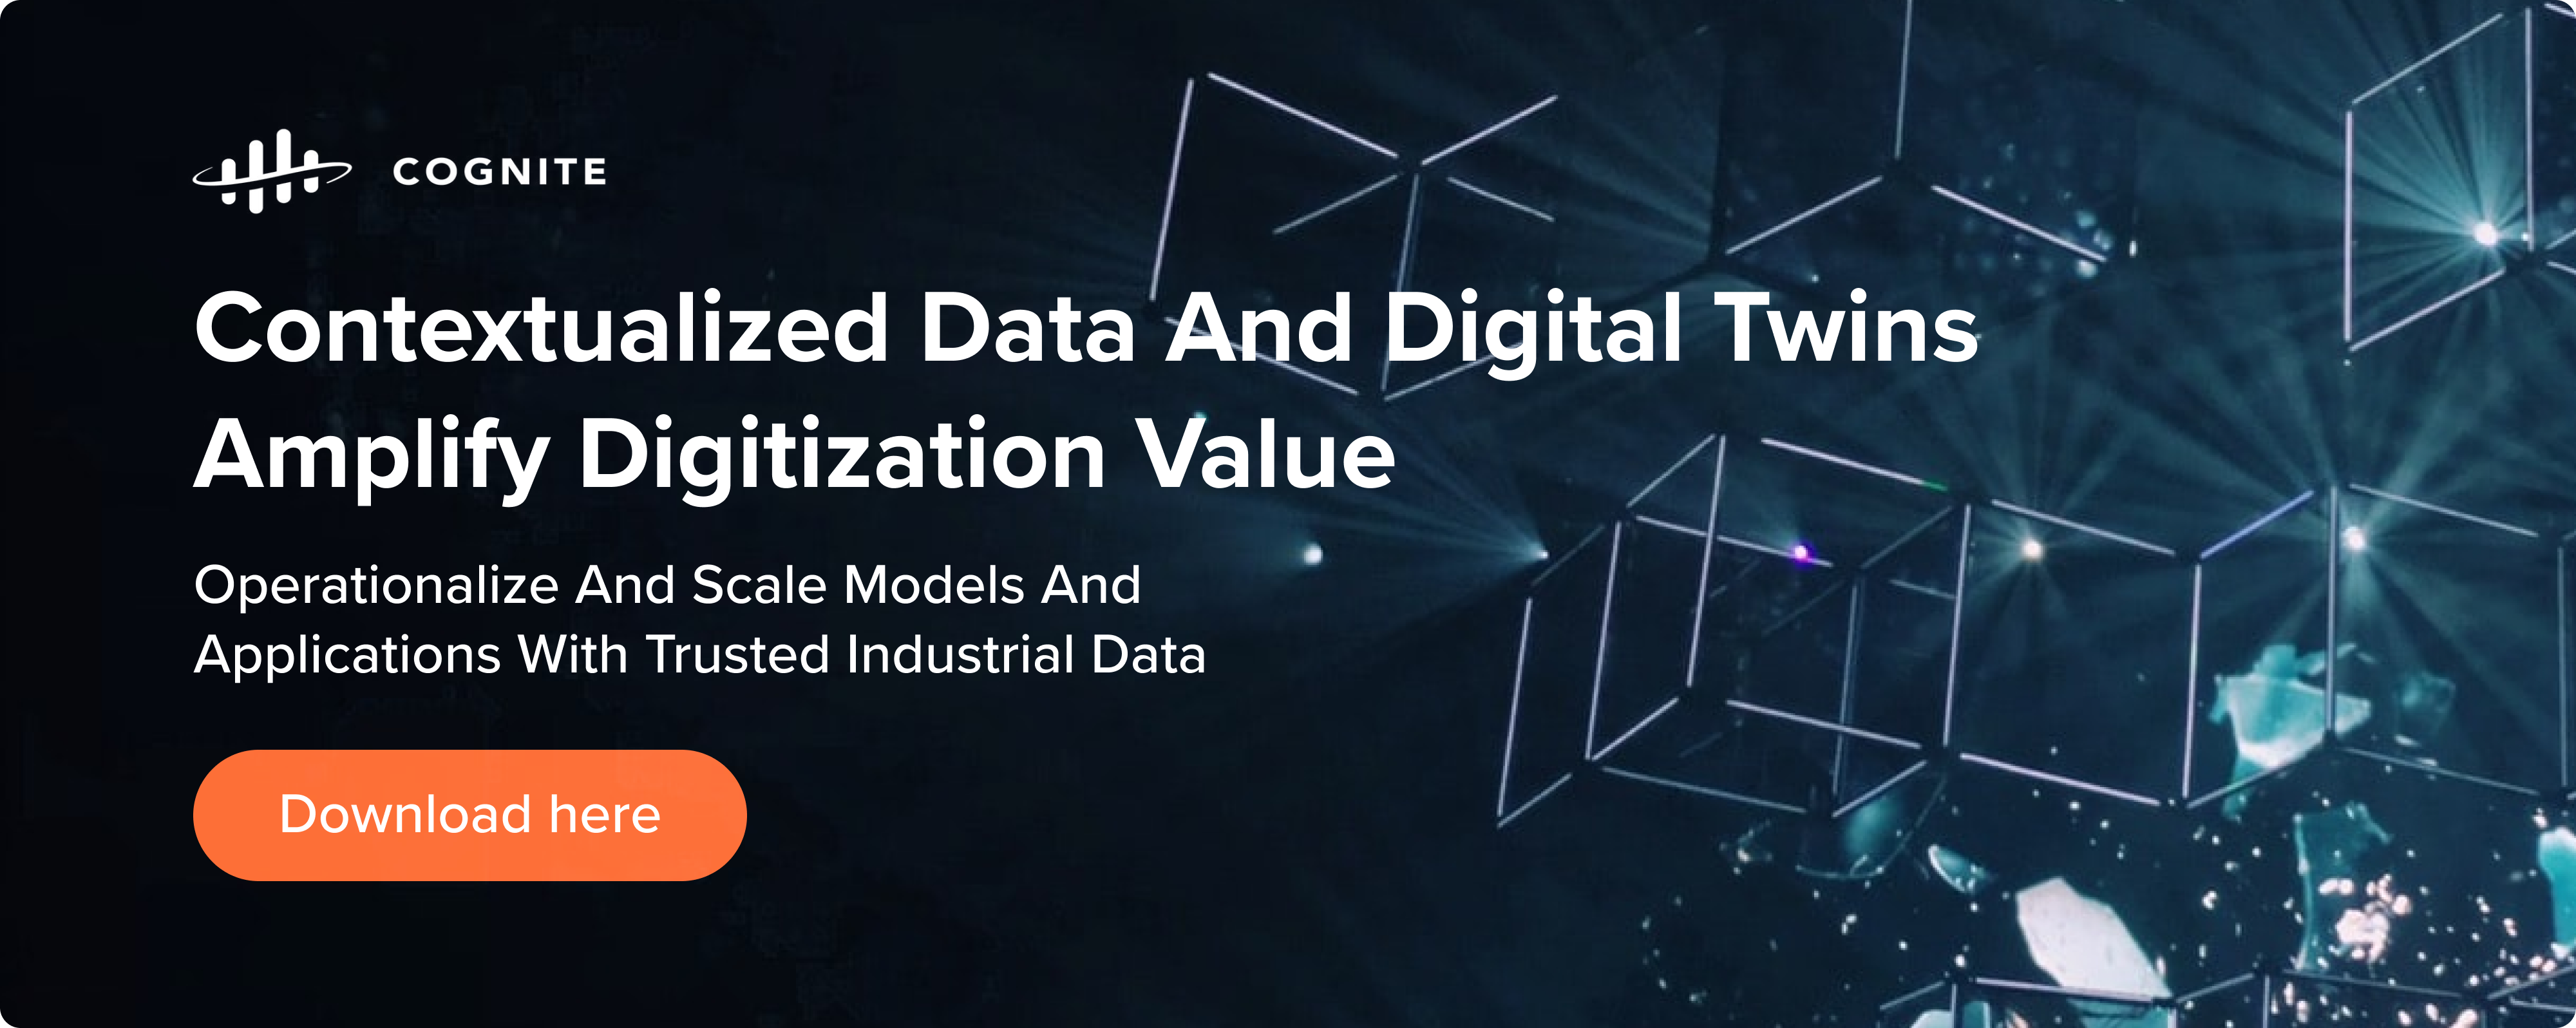 Contextualized Data and Digital Twins Amplify Digitalization Value